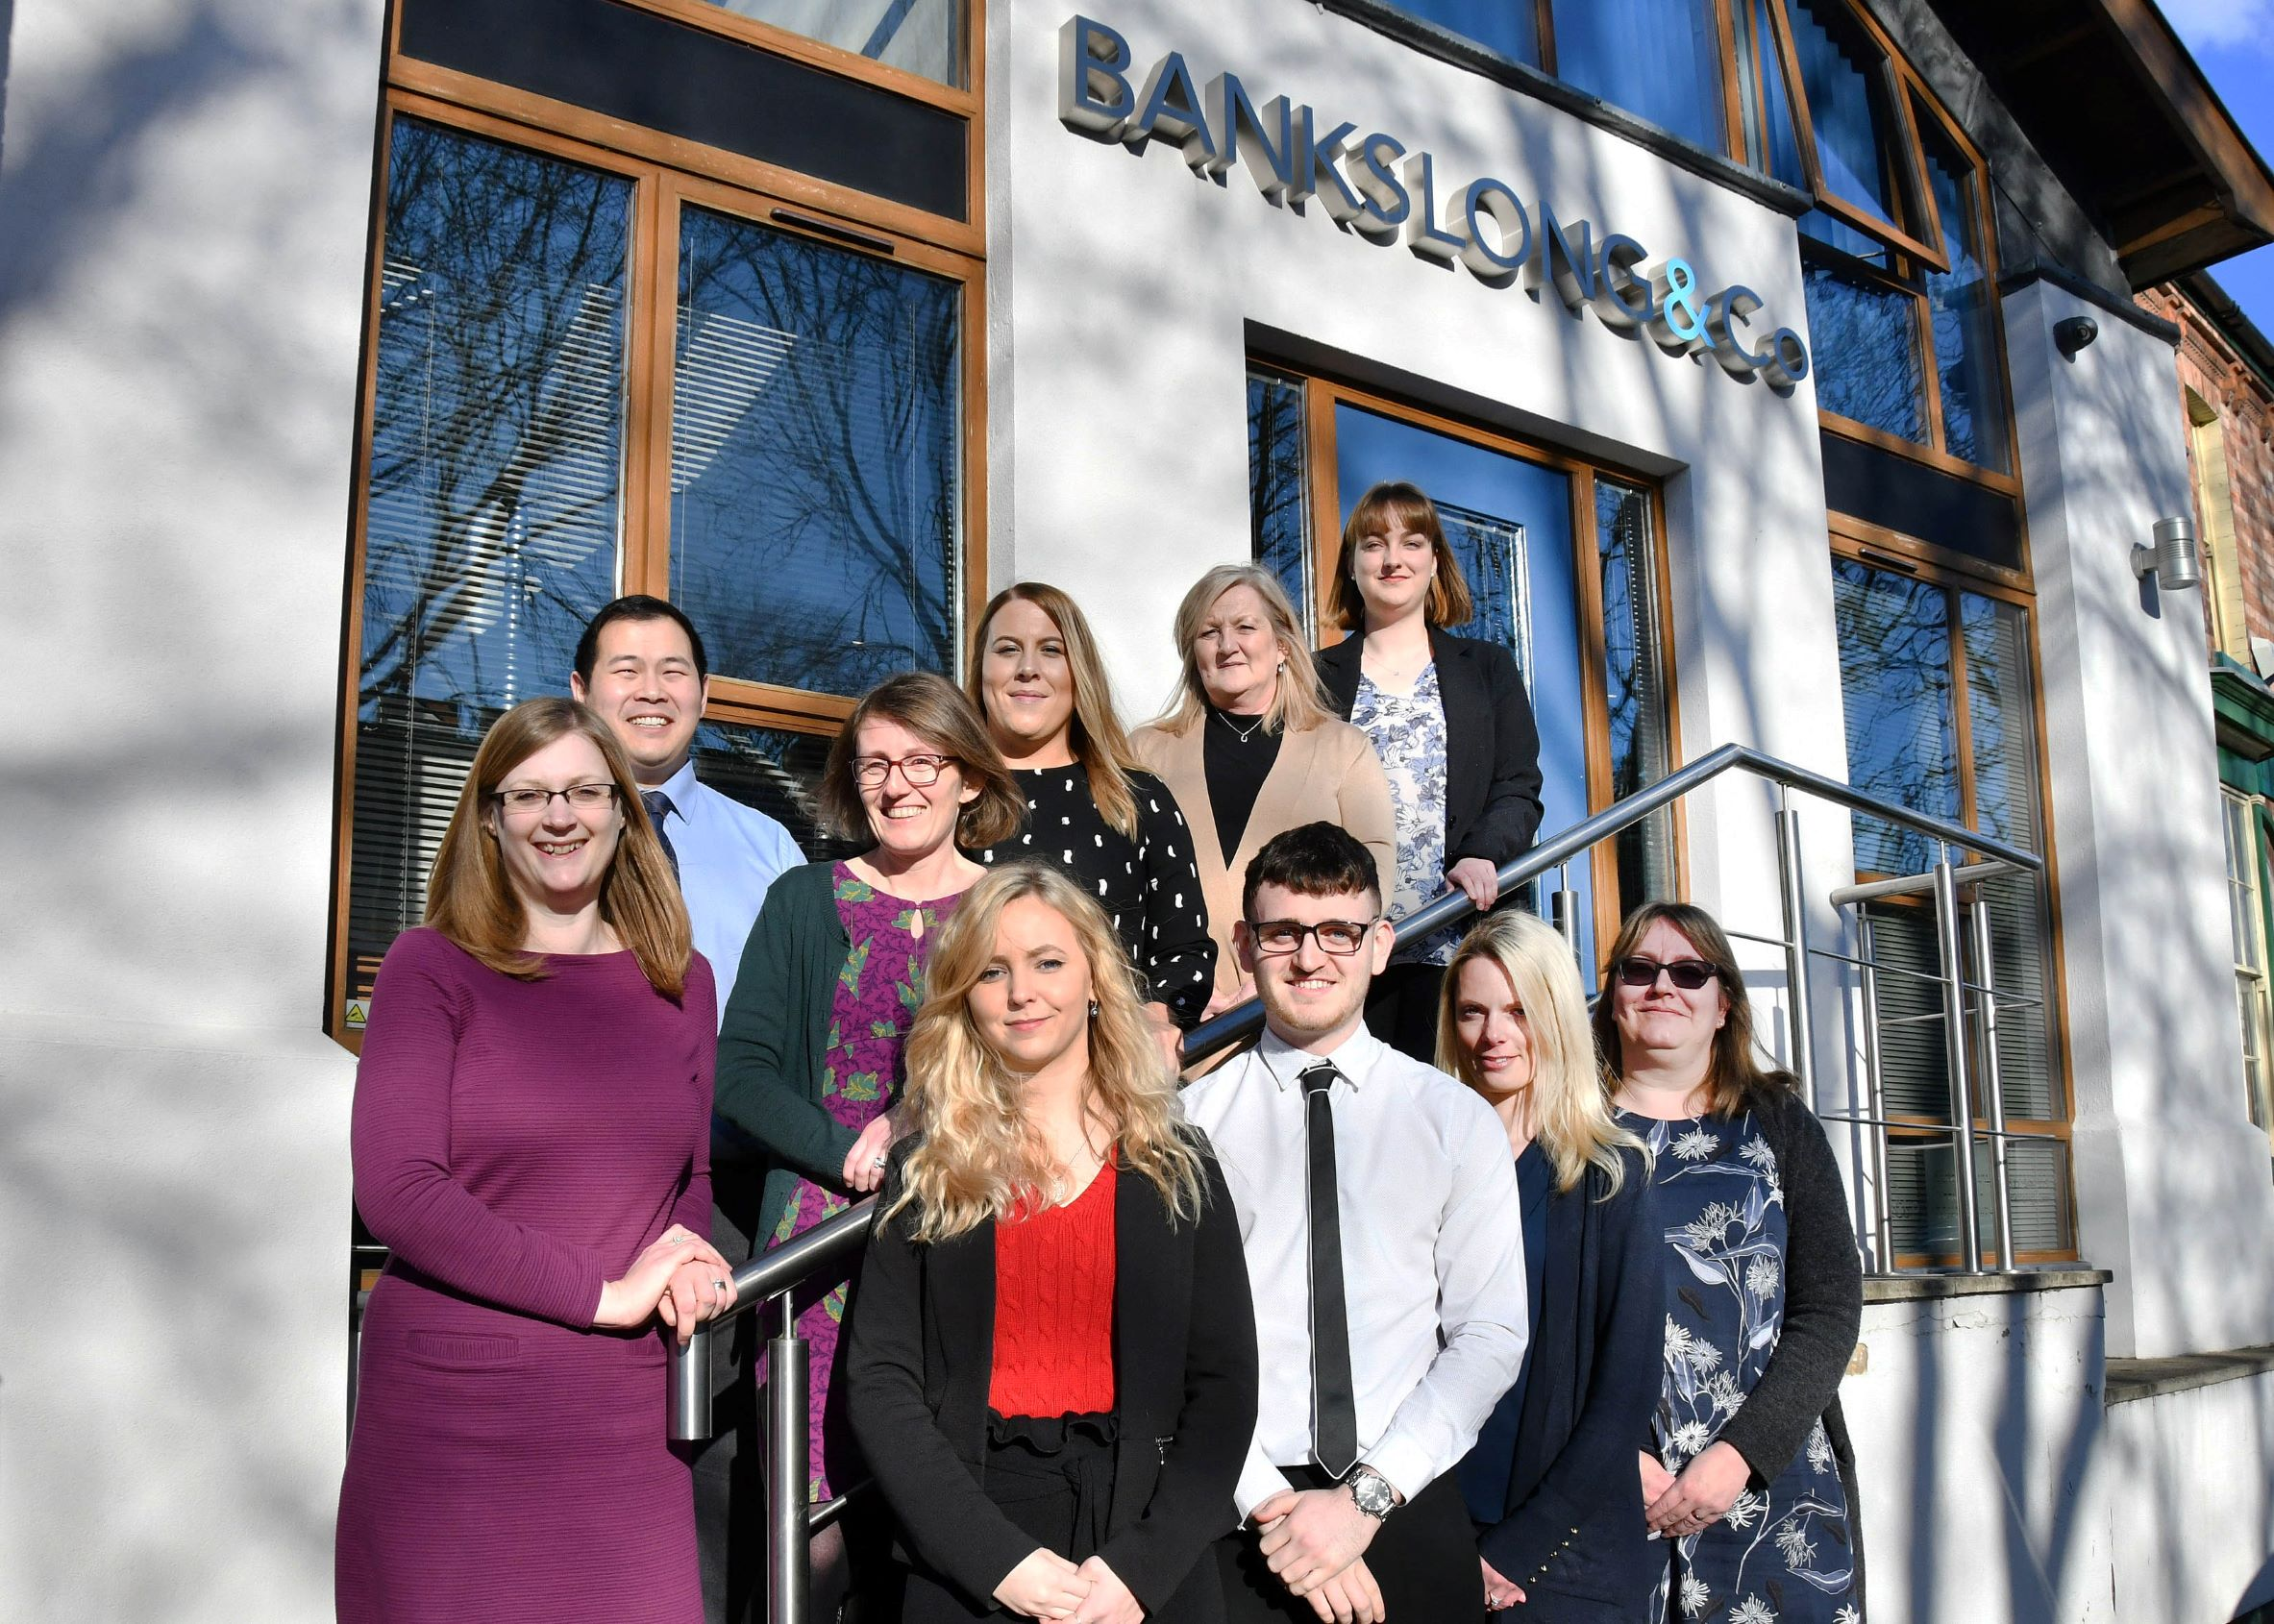 Rising success leads to new job opportunities at Banks Long & Co